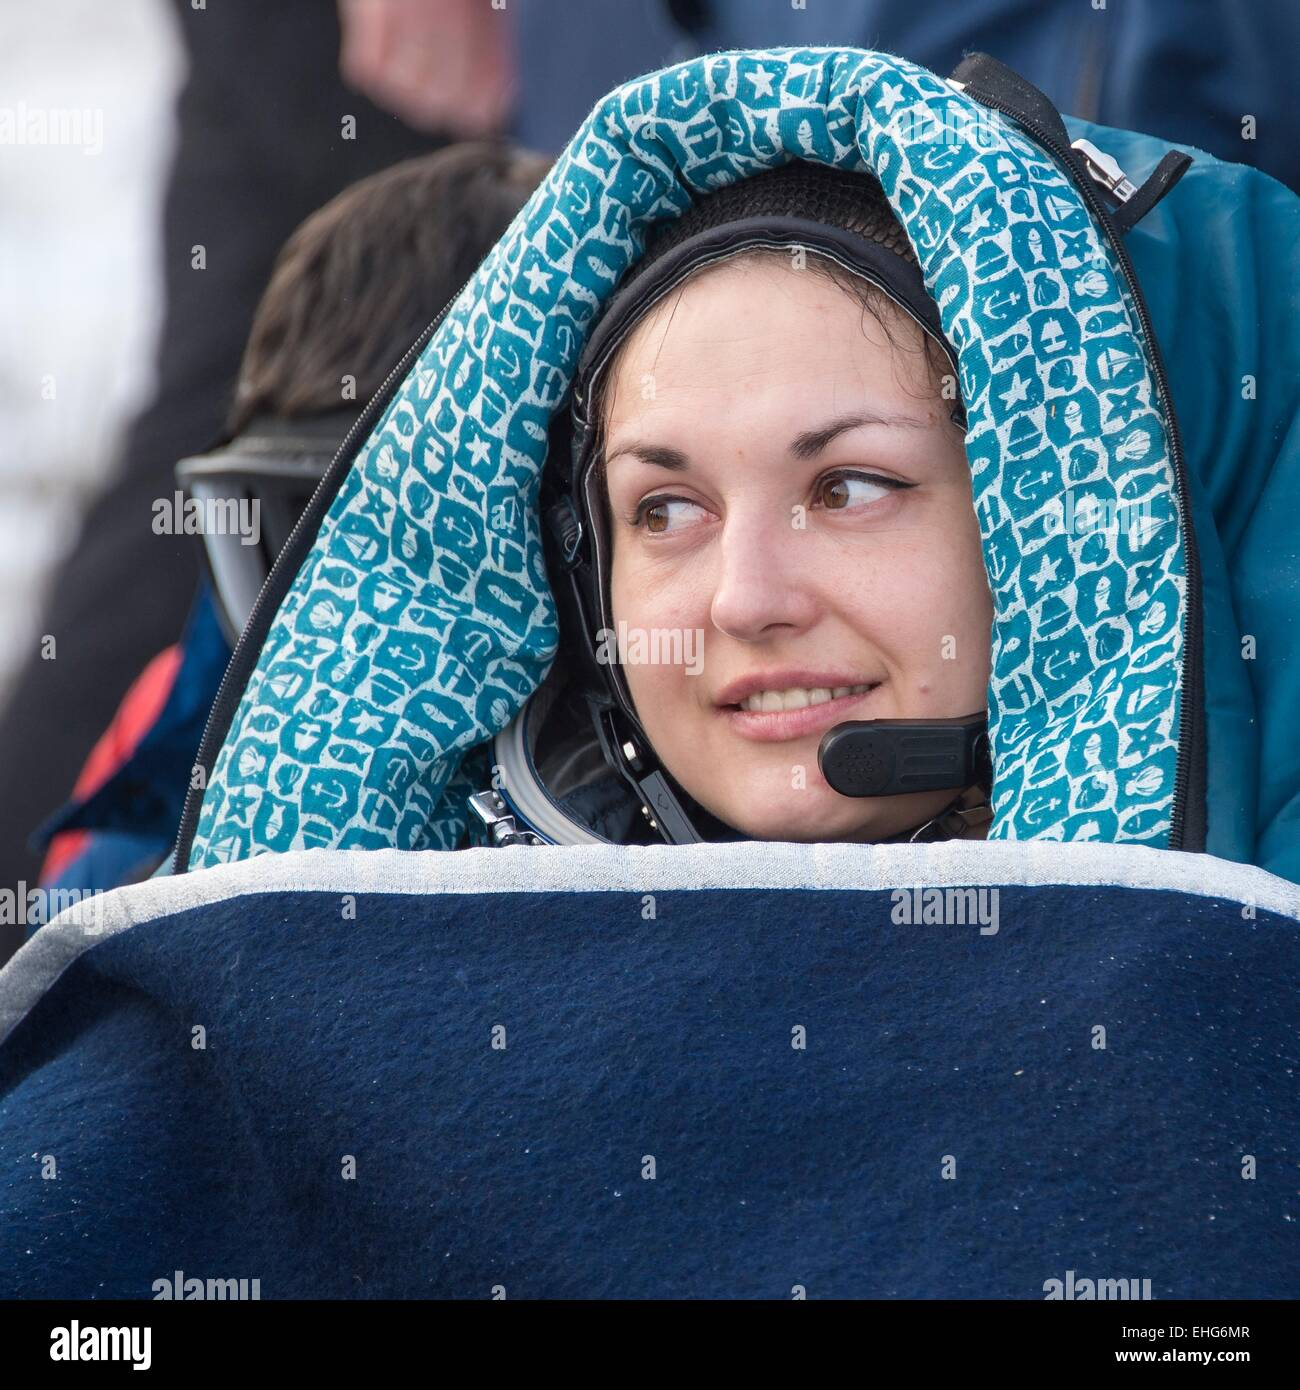 ISS Expedition 42 Cosmonaut Elena Serova wrapped in a blanket outside the Soyuz TMA-14M  capsule just minutes landing - Stock Image